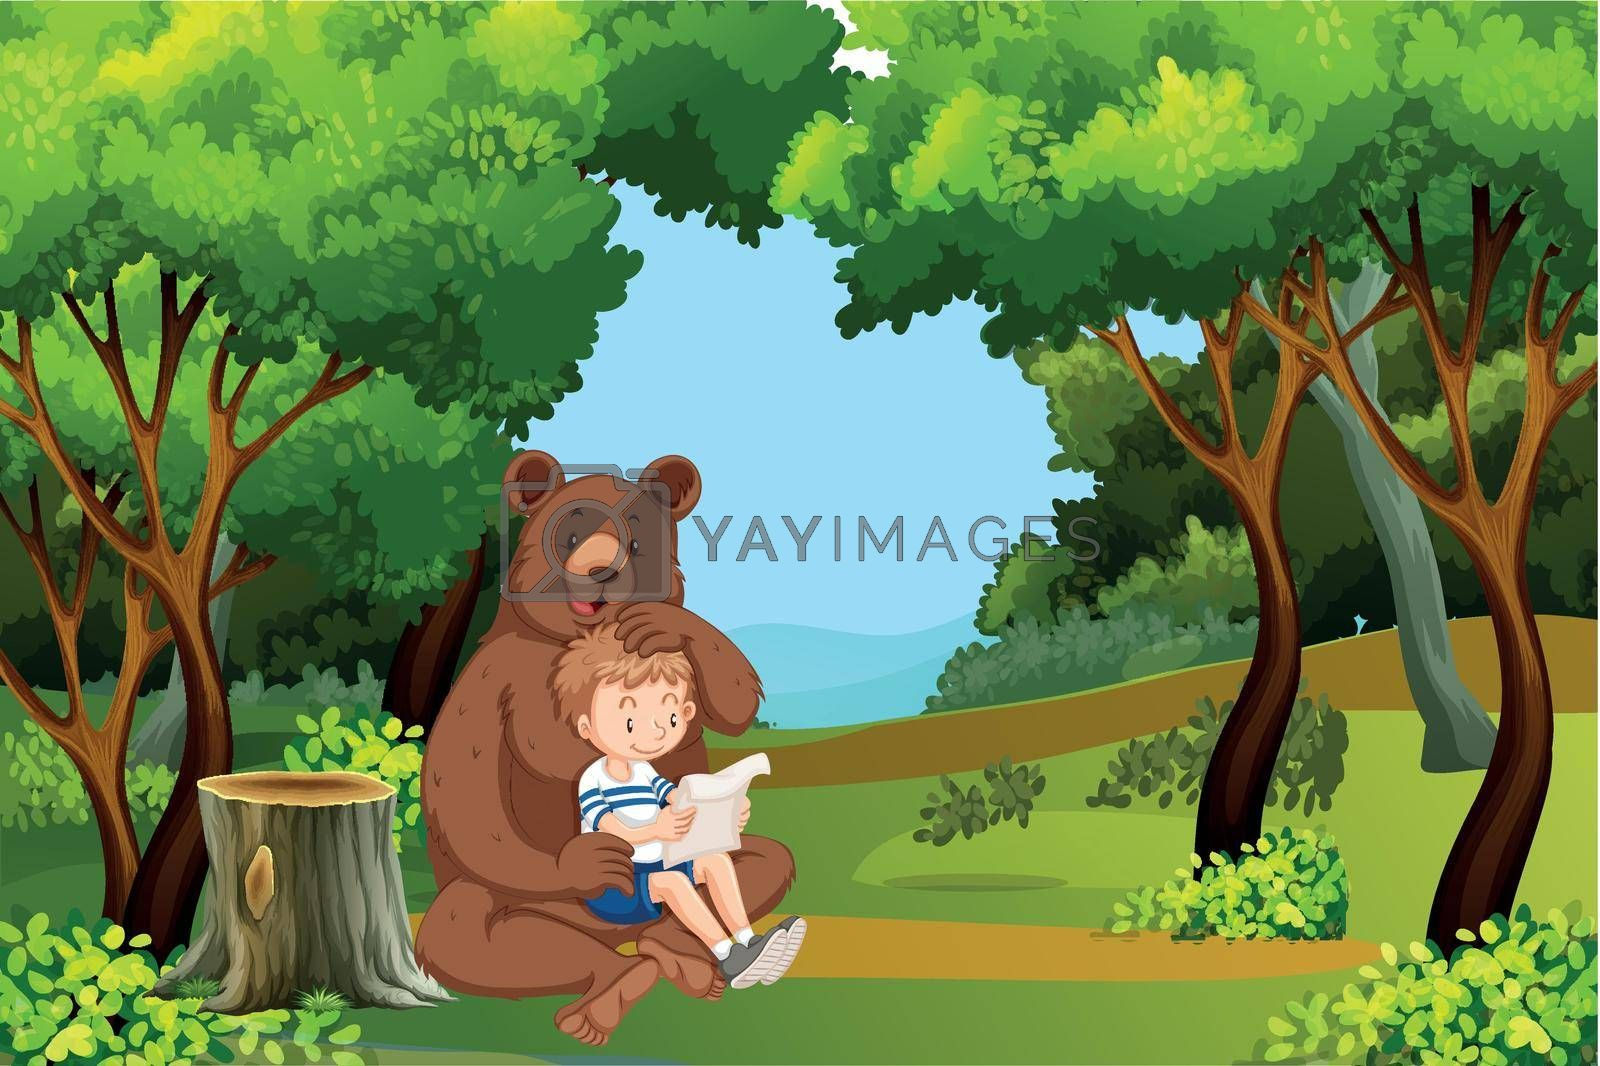 Boy and bear in the forest illustration